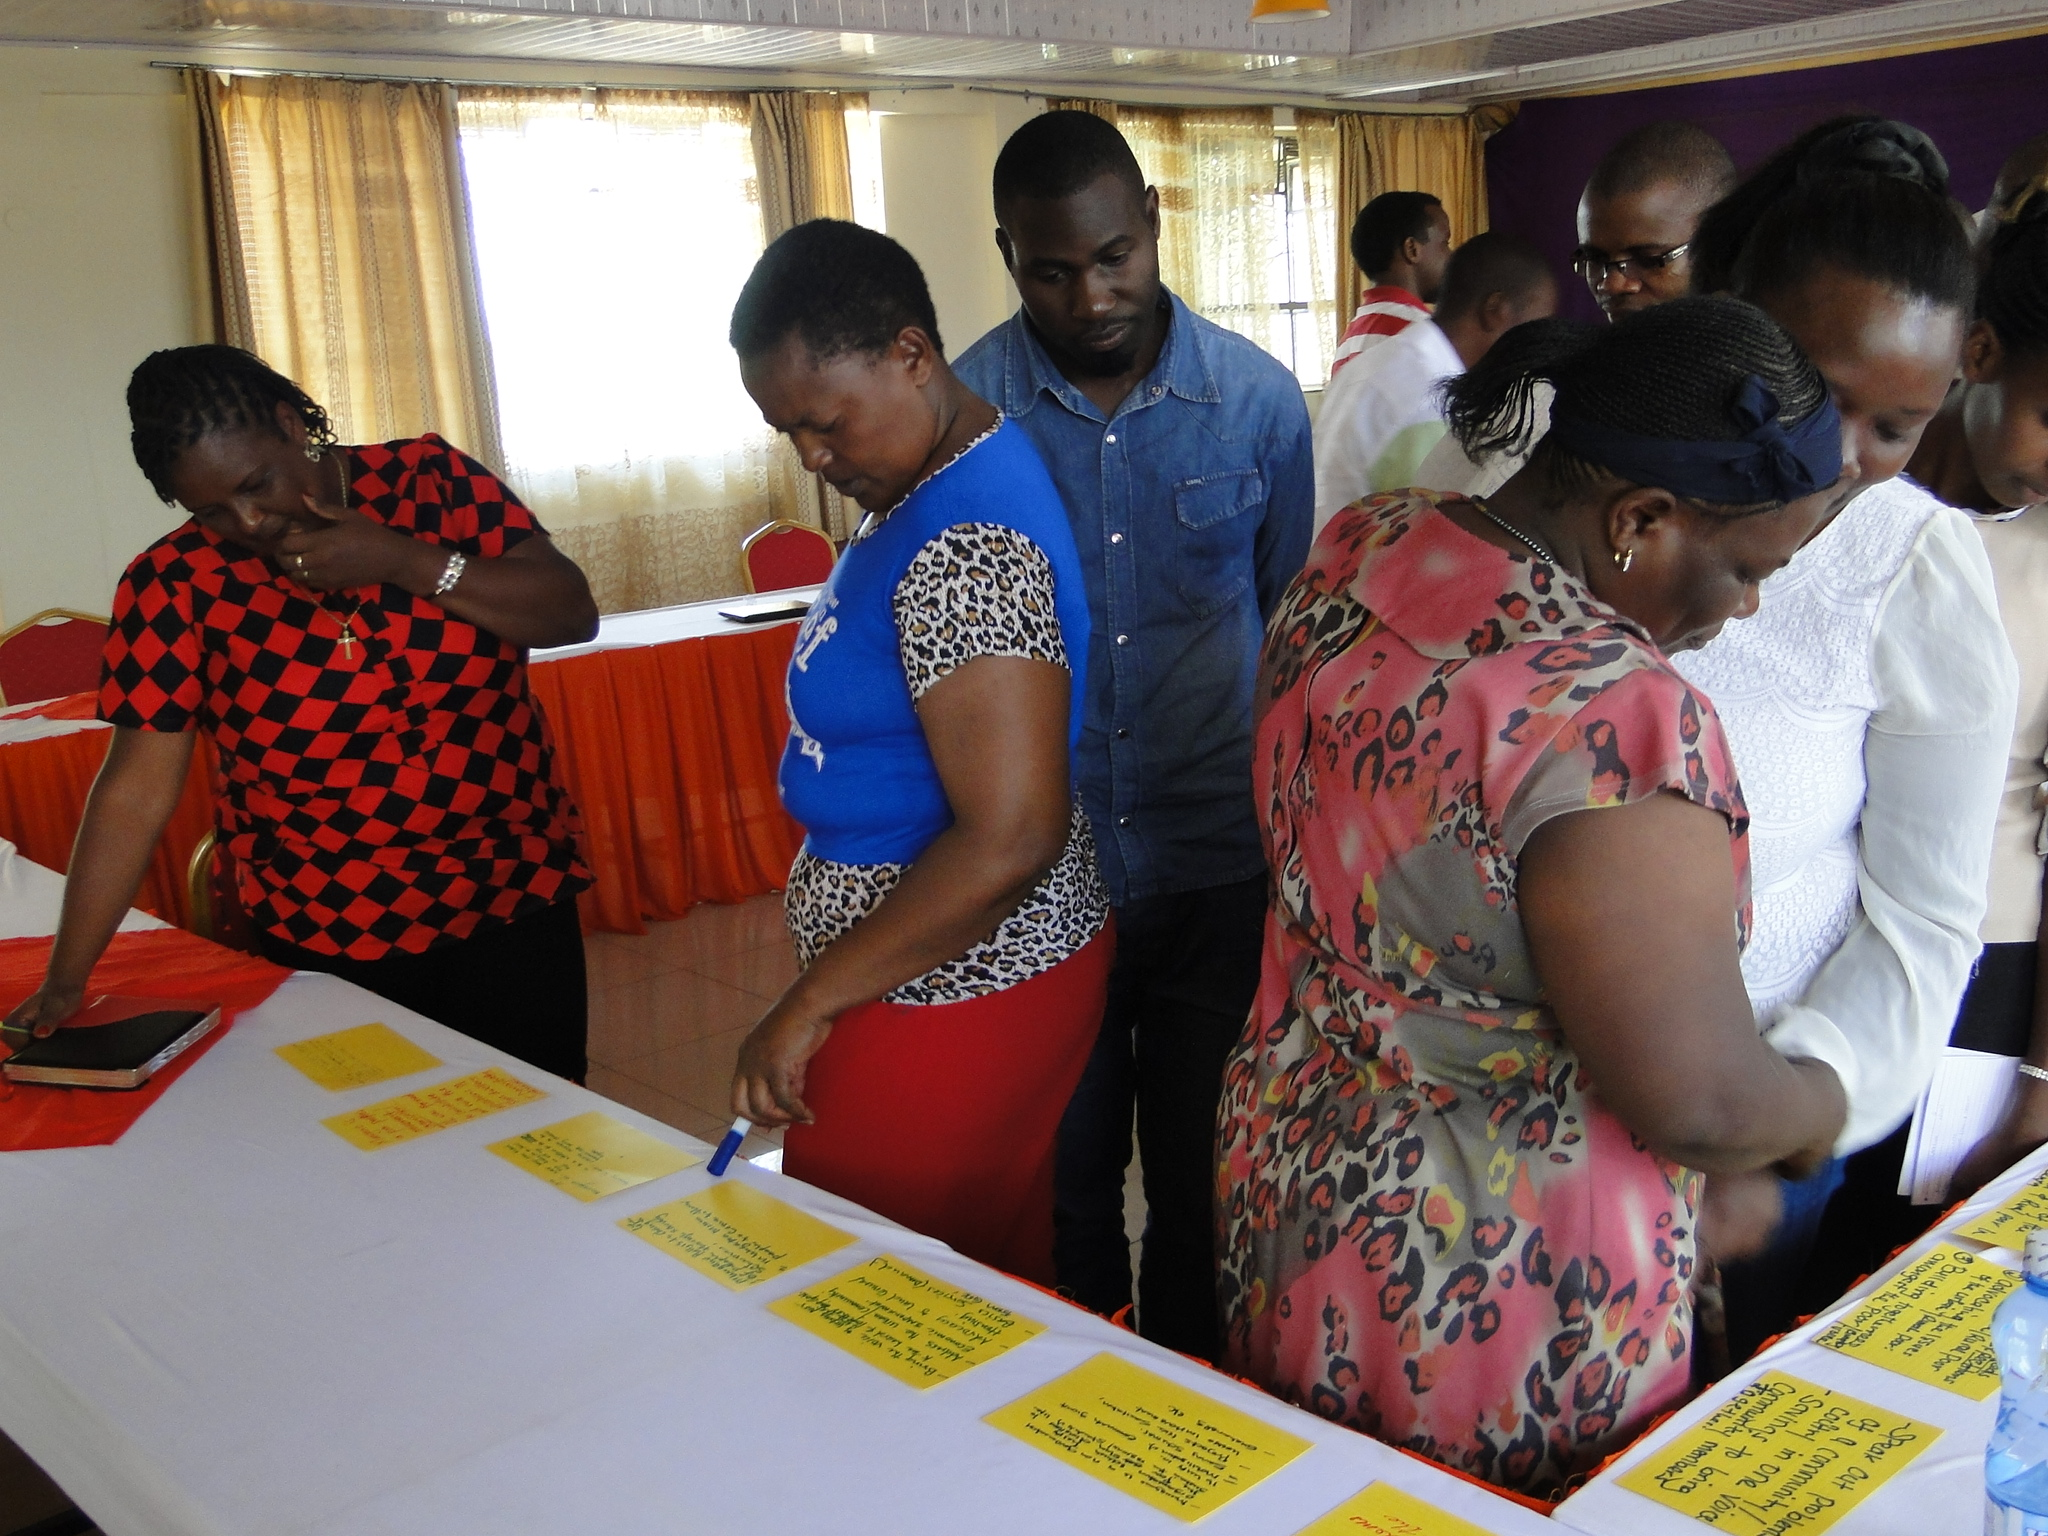 Participants take a gallery walk of some of the priority objectives that participants have proposed for the federation to consider in its strategic plan.